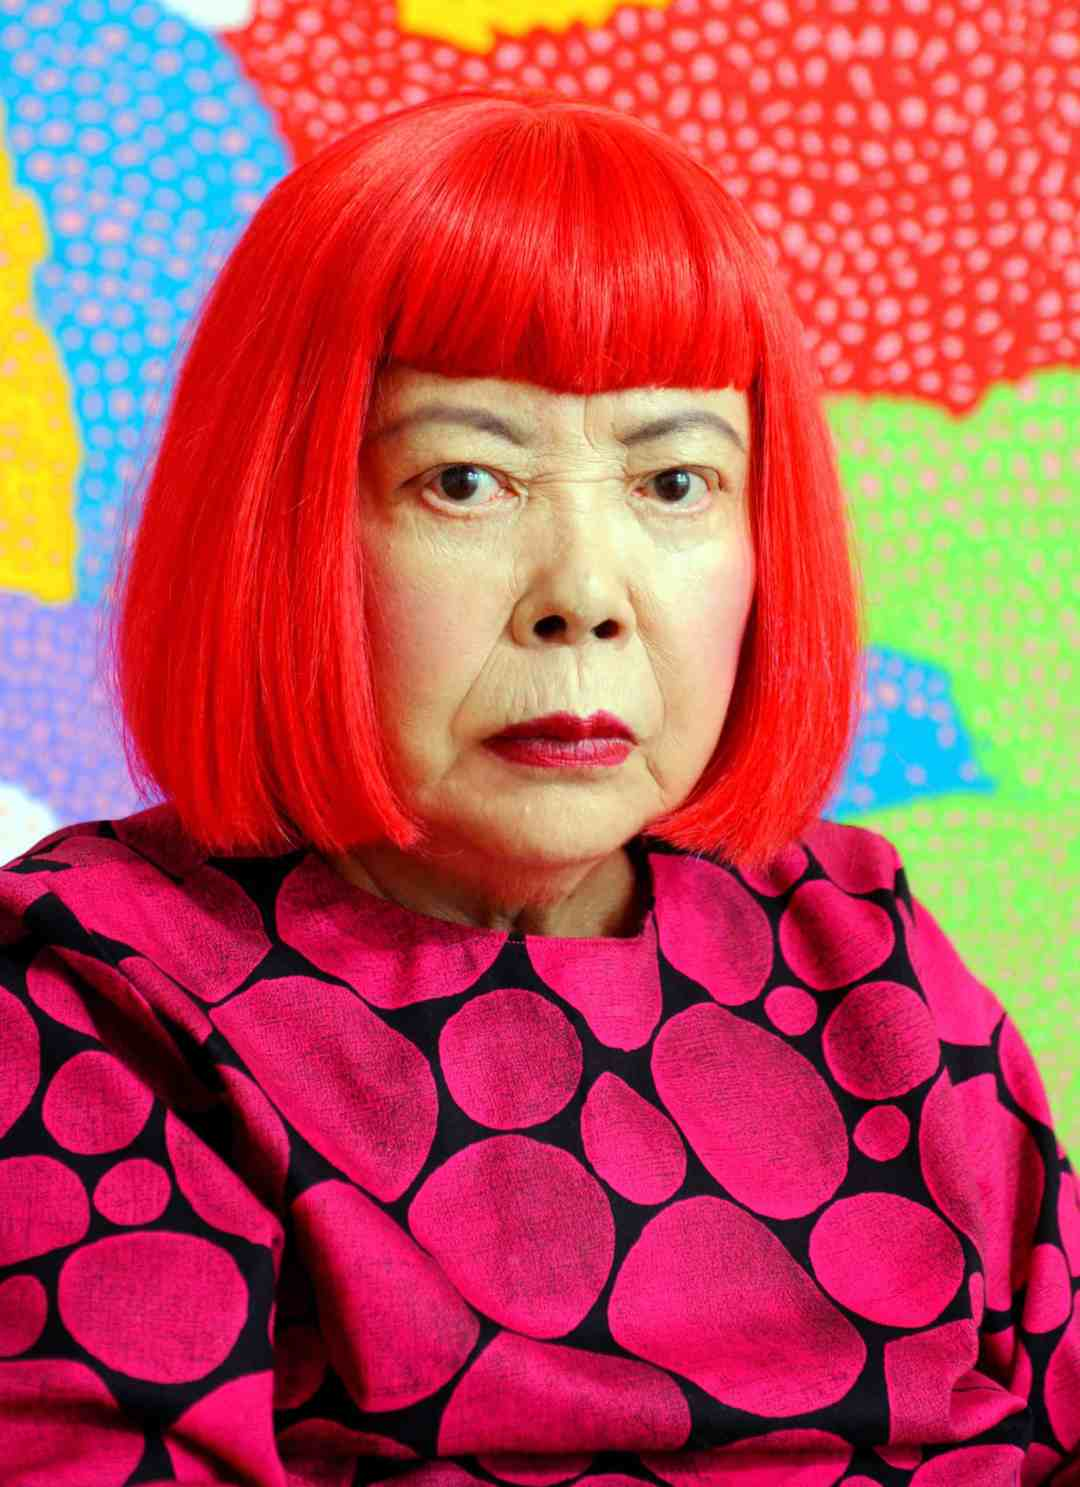 Yayoi Kusama, Person of Cultural Merit, received the Order of Culture on November, 2016.